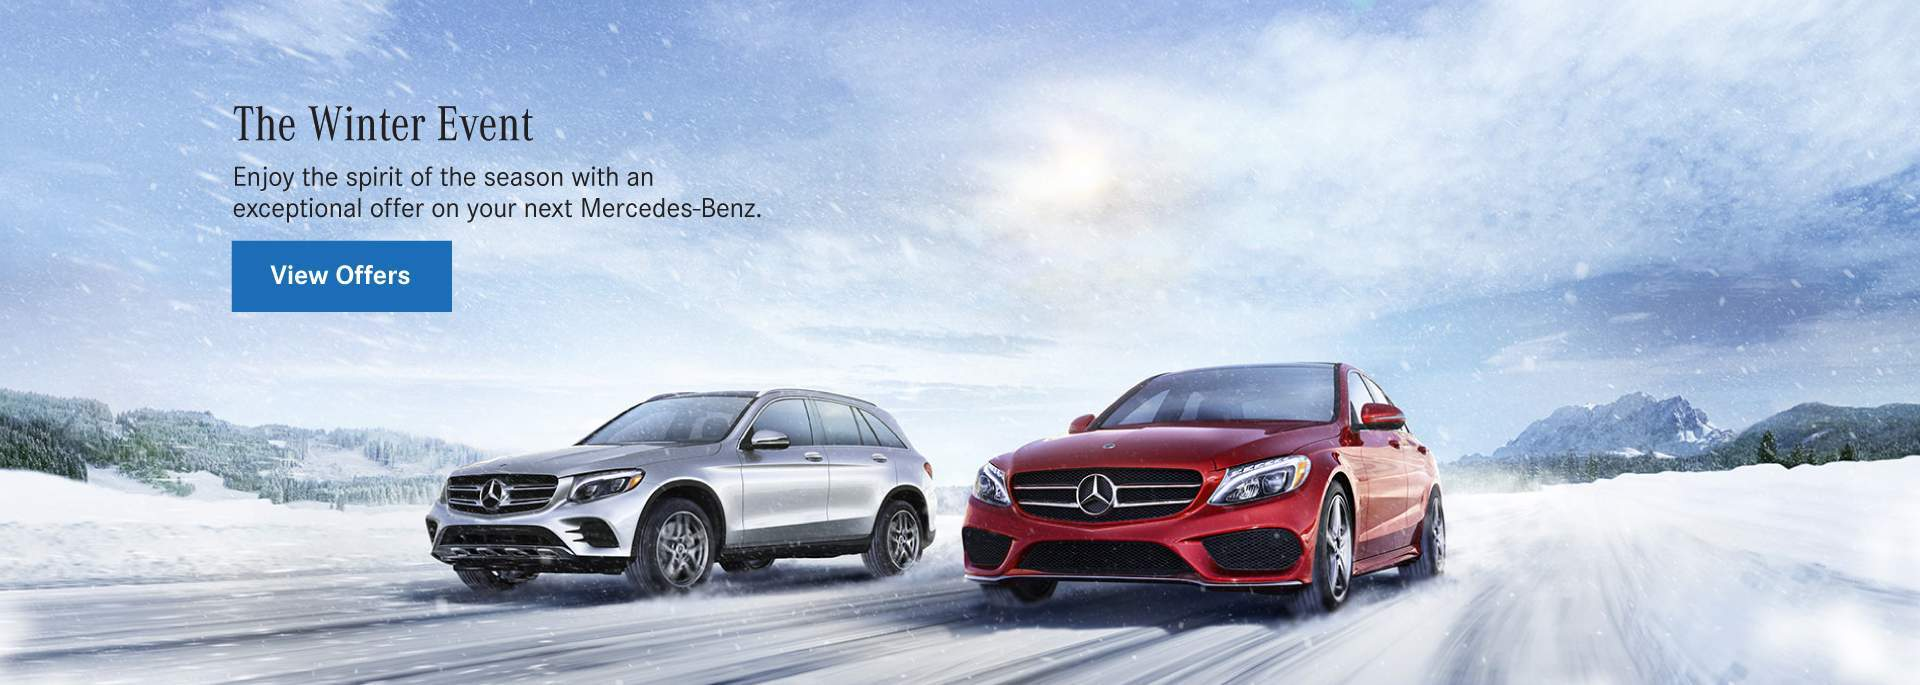 Mercedes benz dealership rochester mn used cars mercedes for Minnesota mercedes benz dealers